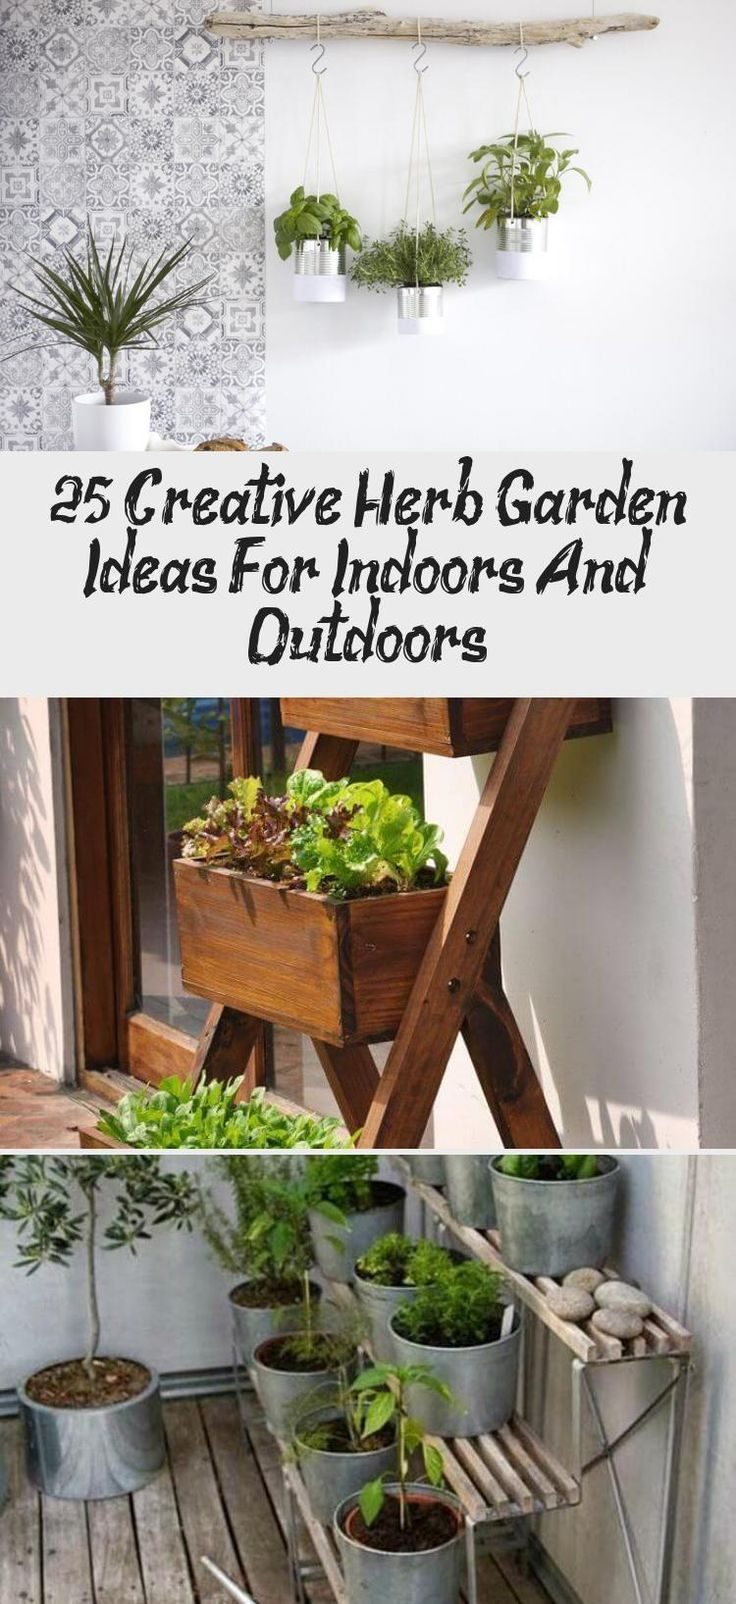 25 Creative Herb Garden Ideas For Indoors And Outdoors Creative Garden Her In 2020 Patio Herb Garden Herb Garden Pots Hanging Herb Gardens